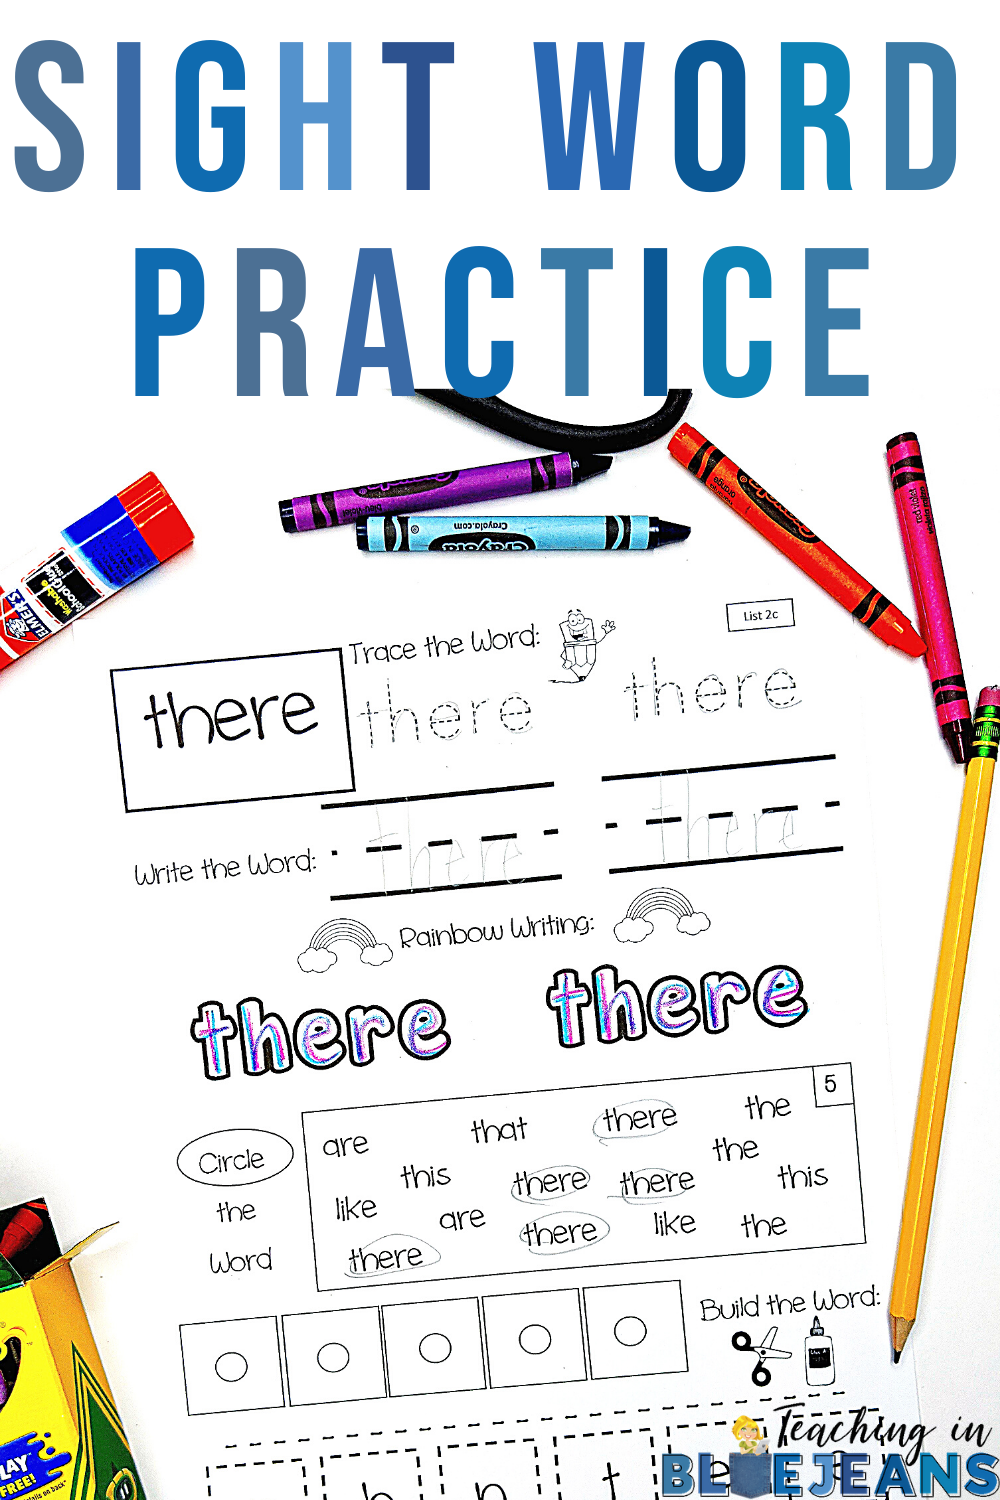 Sight Word practice pages are one page worksheets with focused sight word practice for reading, writing and spelling